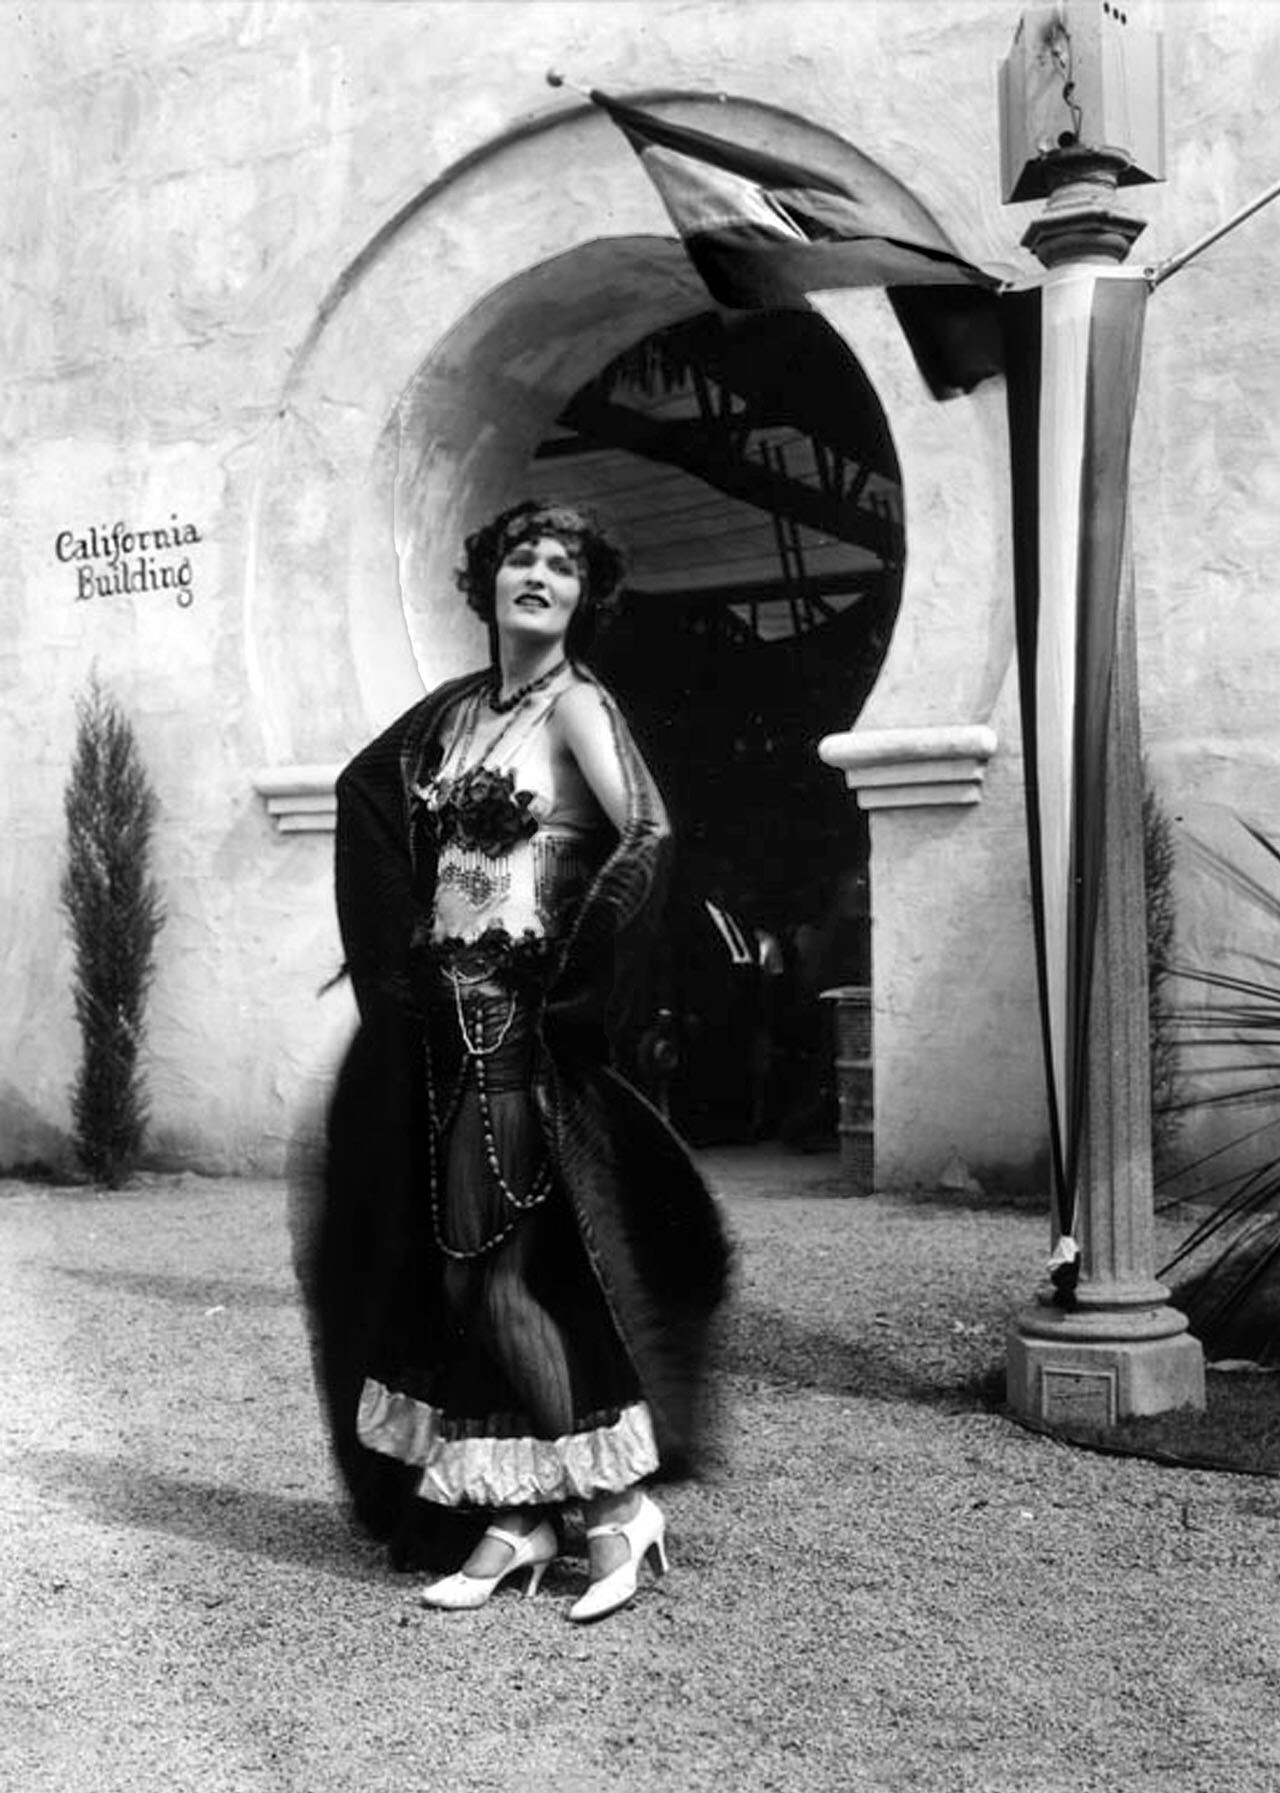 """Orientalism. The fair's image was an Arabian Nights fantasy of """"flaming flappers"""" in skimpy costumes. Photograph courtesy of Security Pacific National Bank Collection, Los Angeles Public Library"""